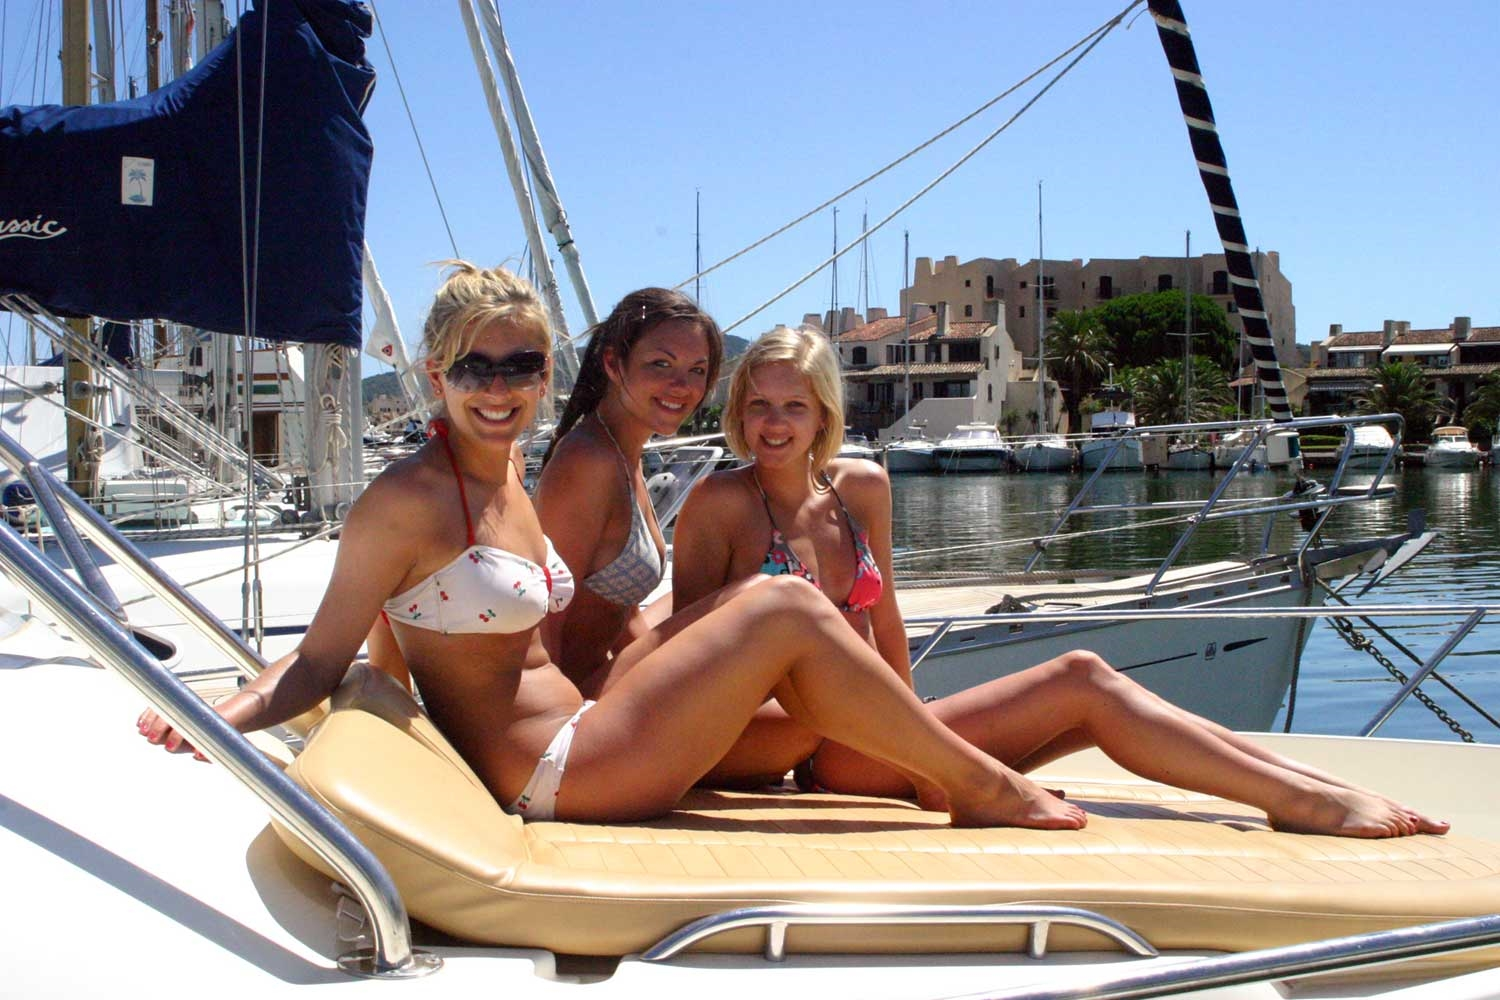 chicks on a boatjpg.jpg